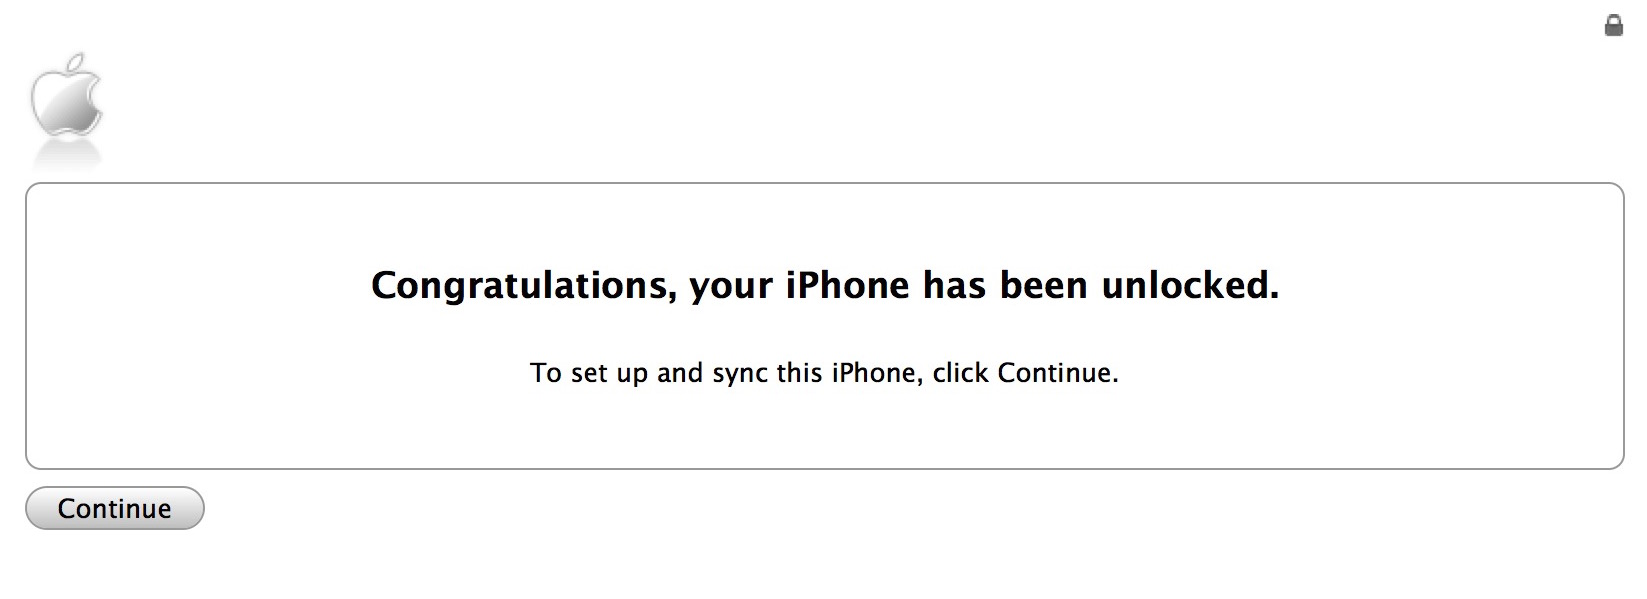 Congratulations your iPhone has been unlocked